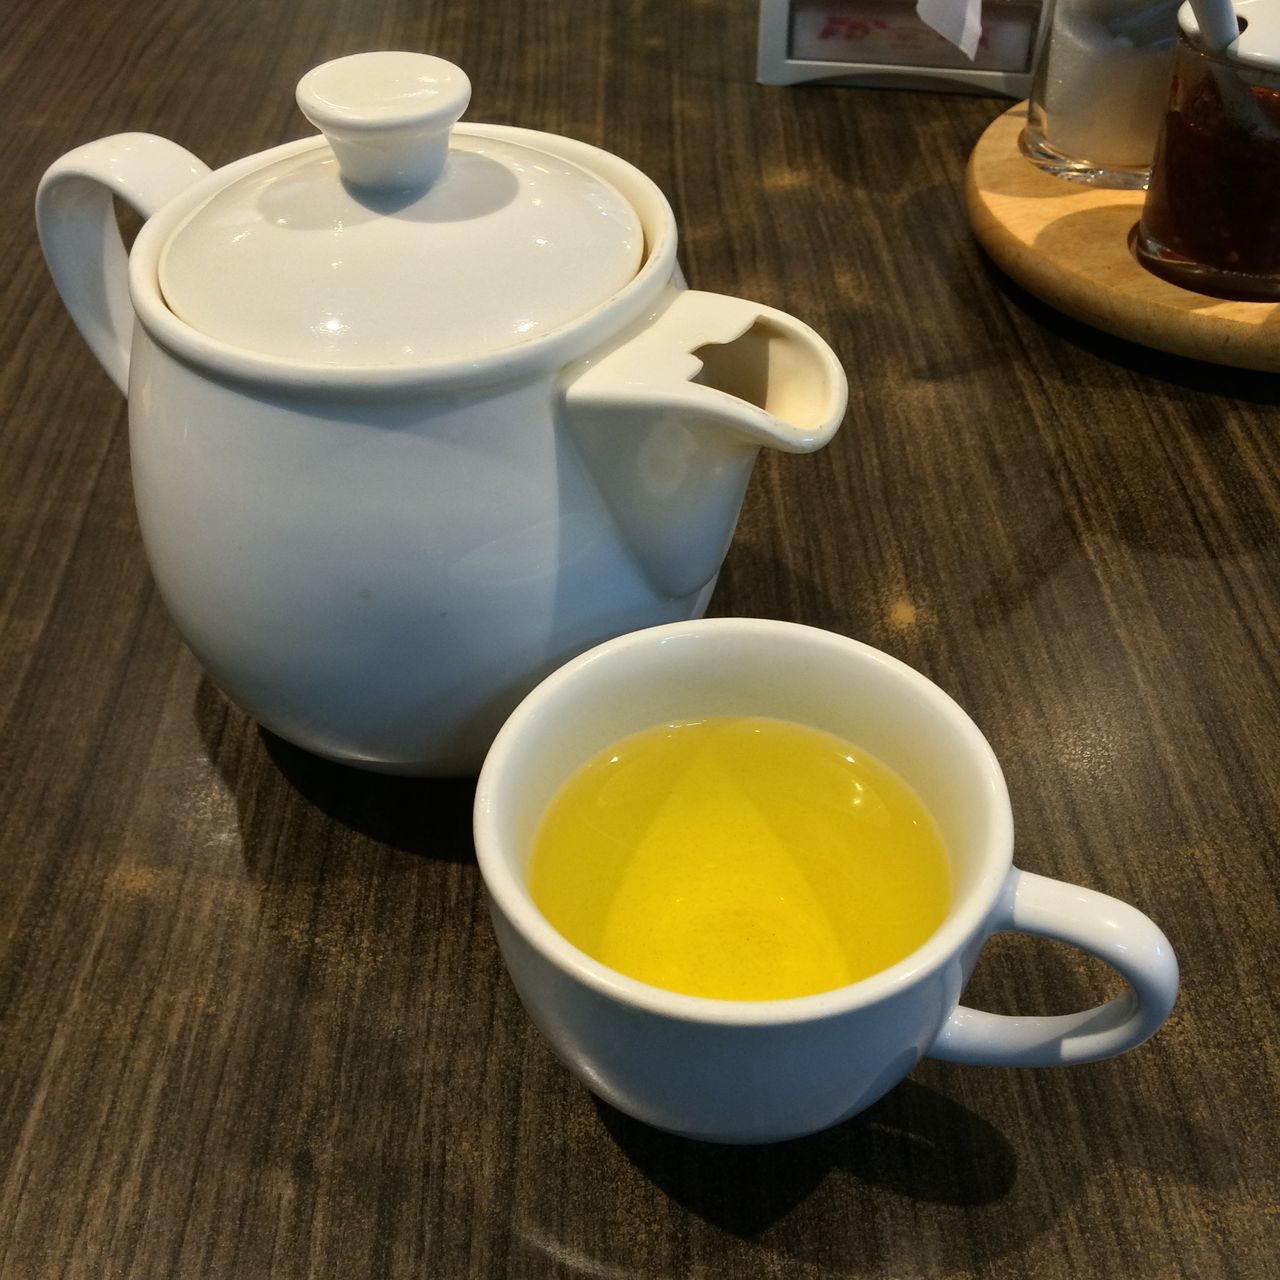 Close-Up Of Chamomile Tea In Cup With Teapot On Table